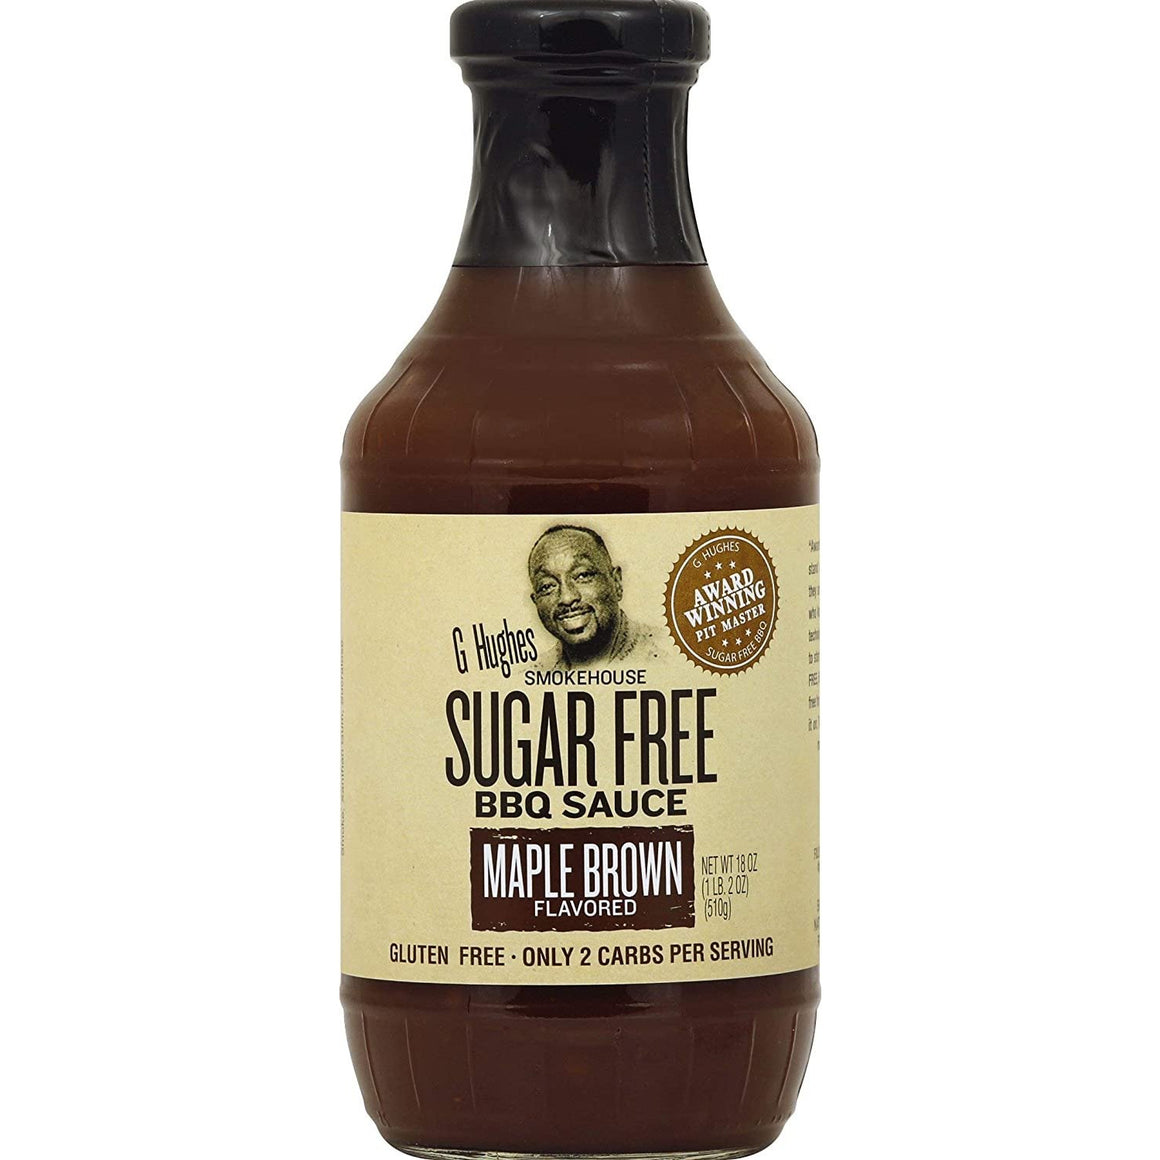 G Hughes Smokehouse - Sugar Free BBQ Sauce - Maple Brown - 18 oz.